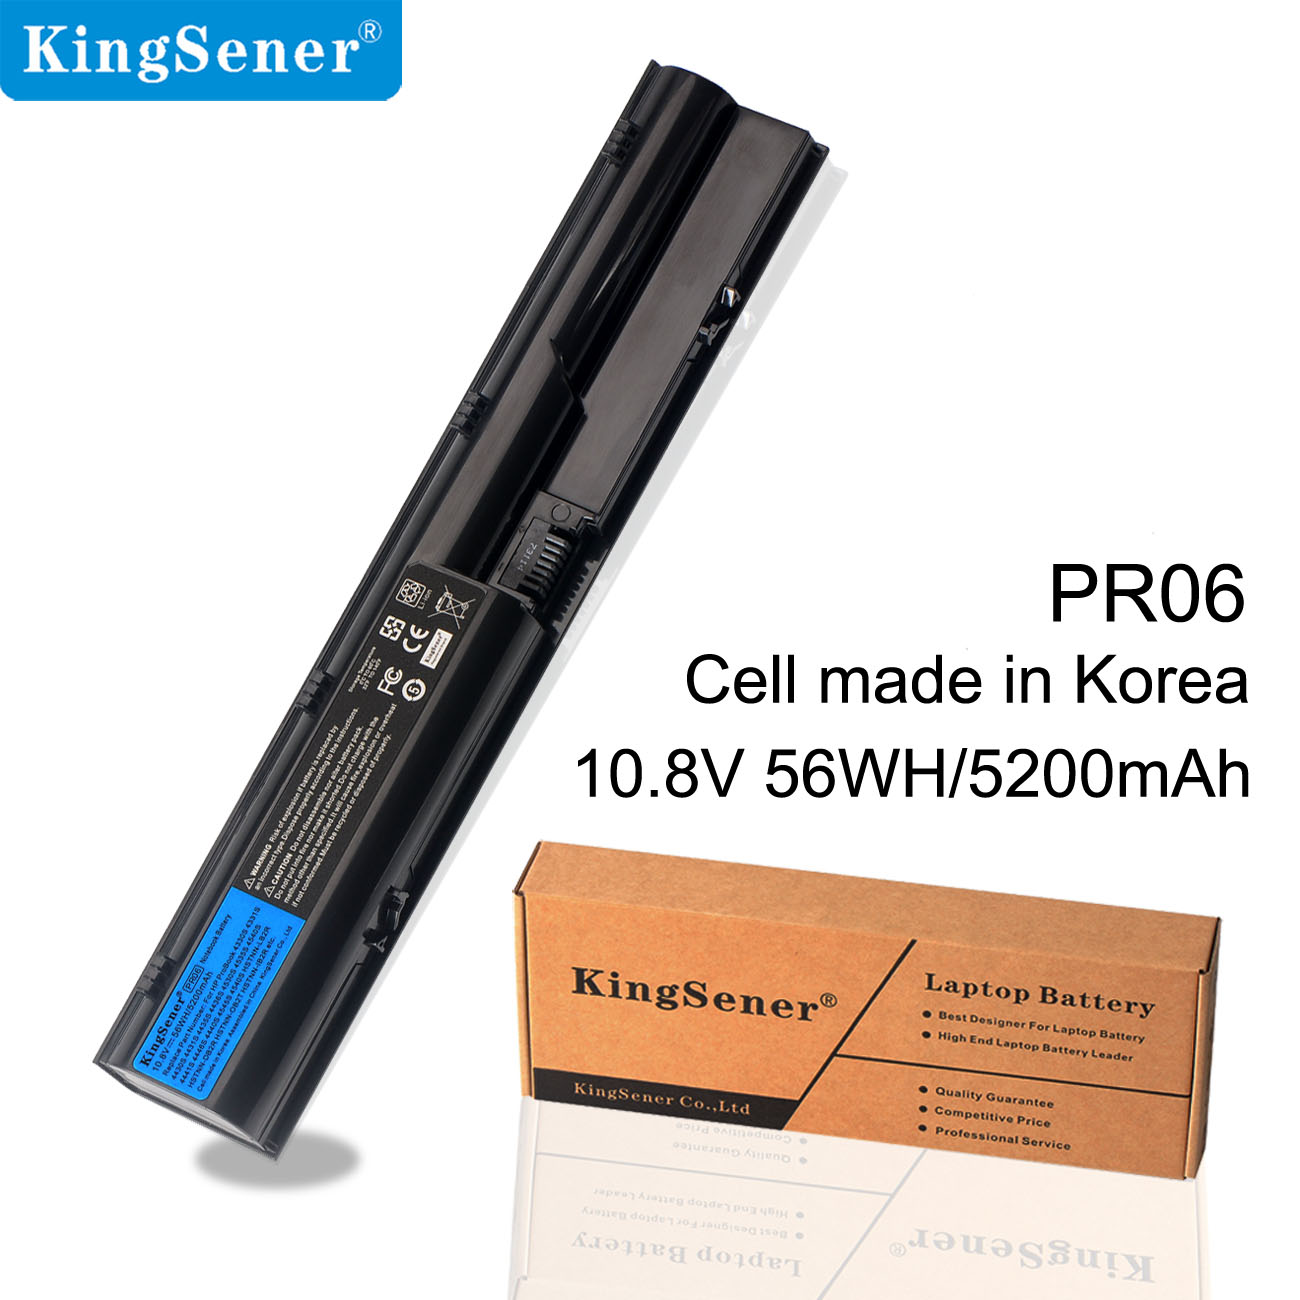 KingSener PR06 PR09 Laptop Battery For HP ProBook 4330S 4331S 4530S 4540S 4535S 4430S 4435S 4436S HSTNN-OB2T HSTNN-LB2R /DB2RKingSener PR06 PR09 Laptop Battery For HP ProBook 4330S 4331S 4530S 4540S 4535S 4430S 4435S 4436S HSTNN-OB2T HSTNN-LB2R /DB2R